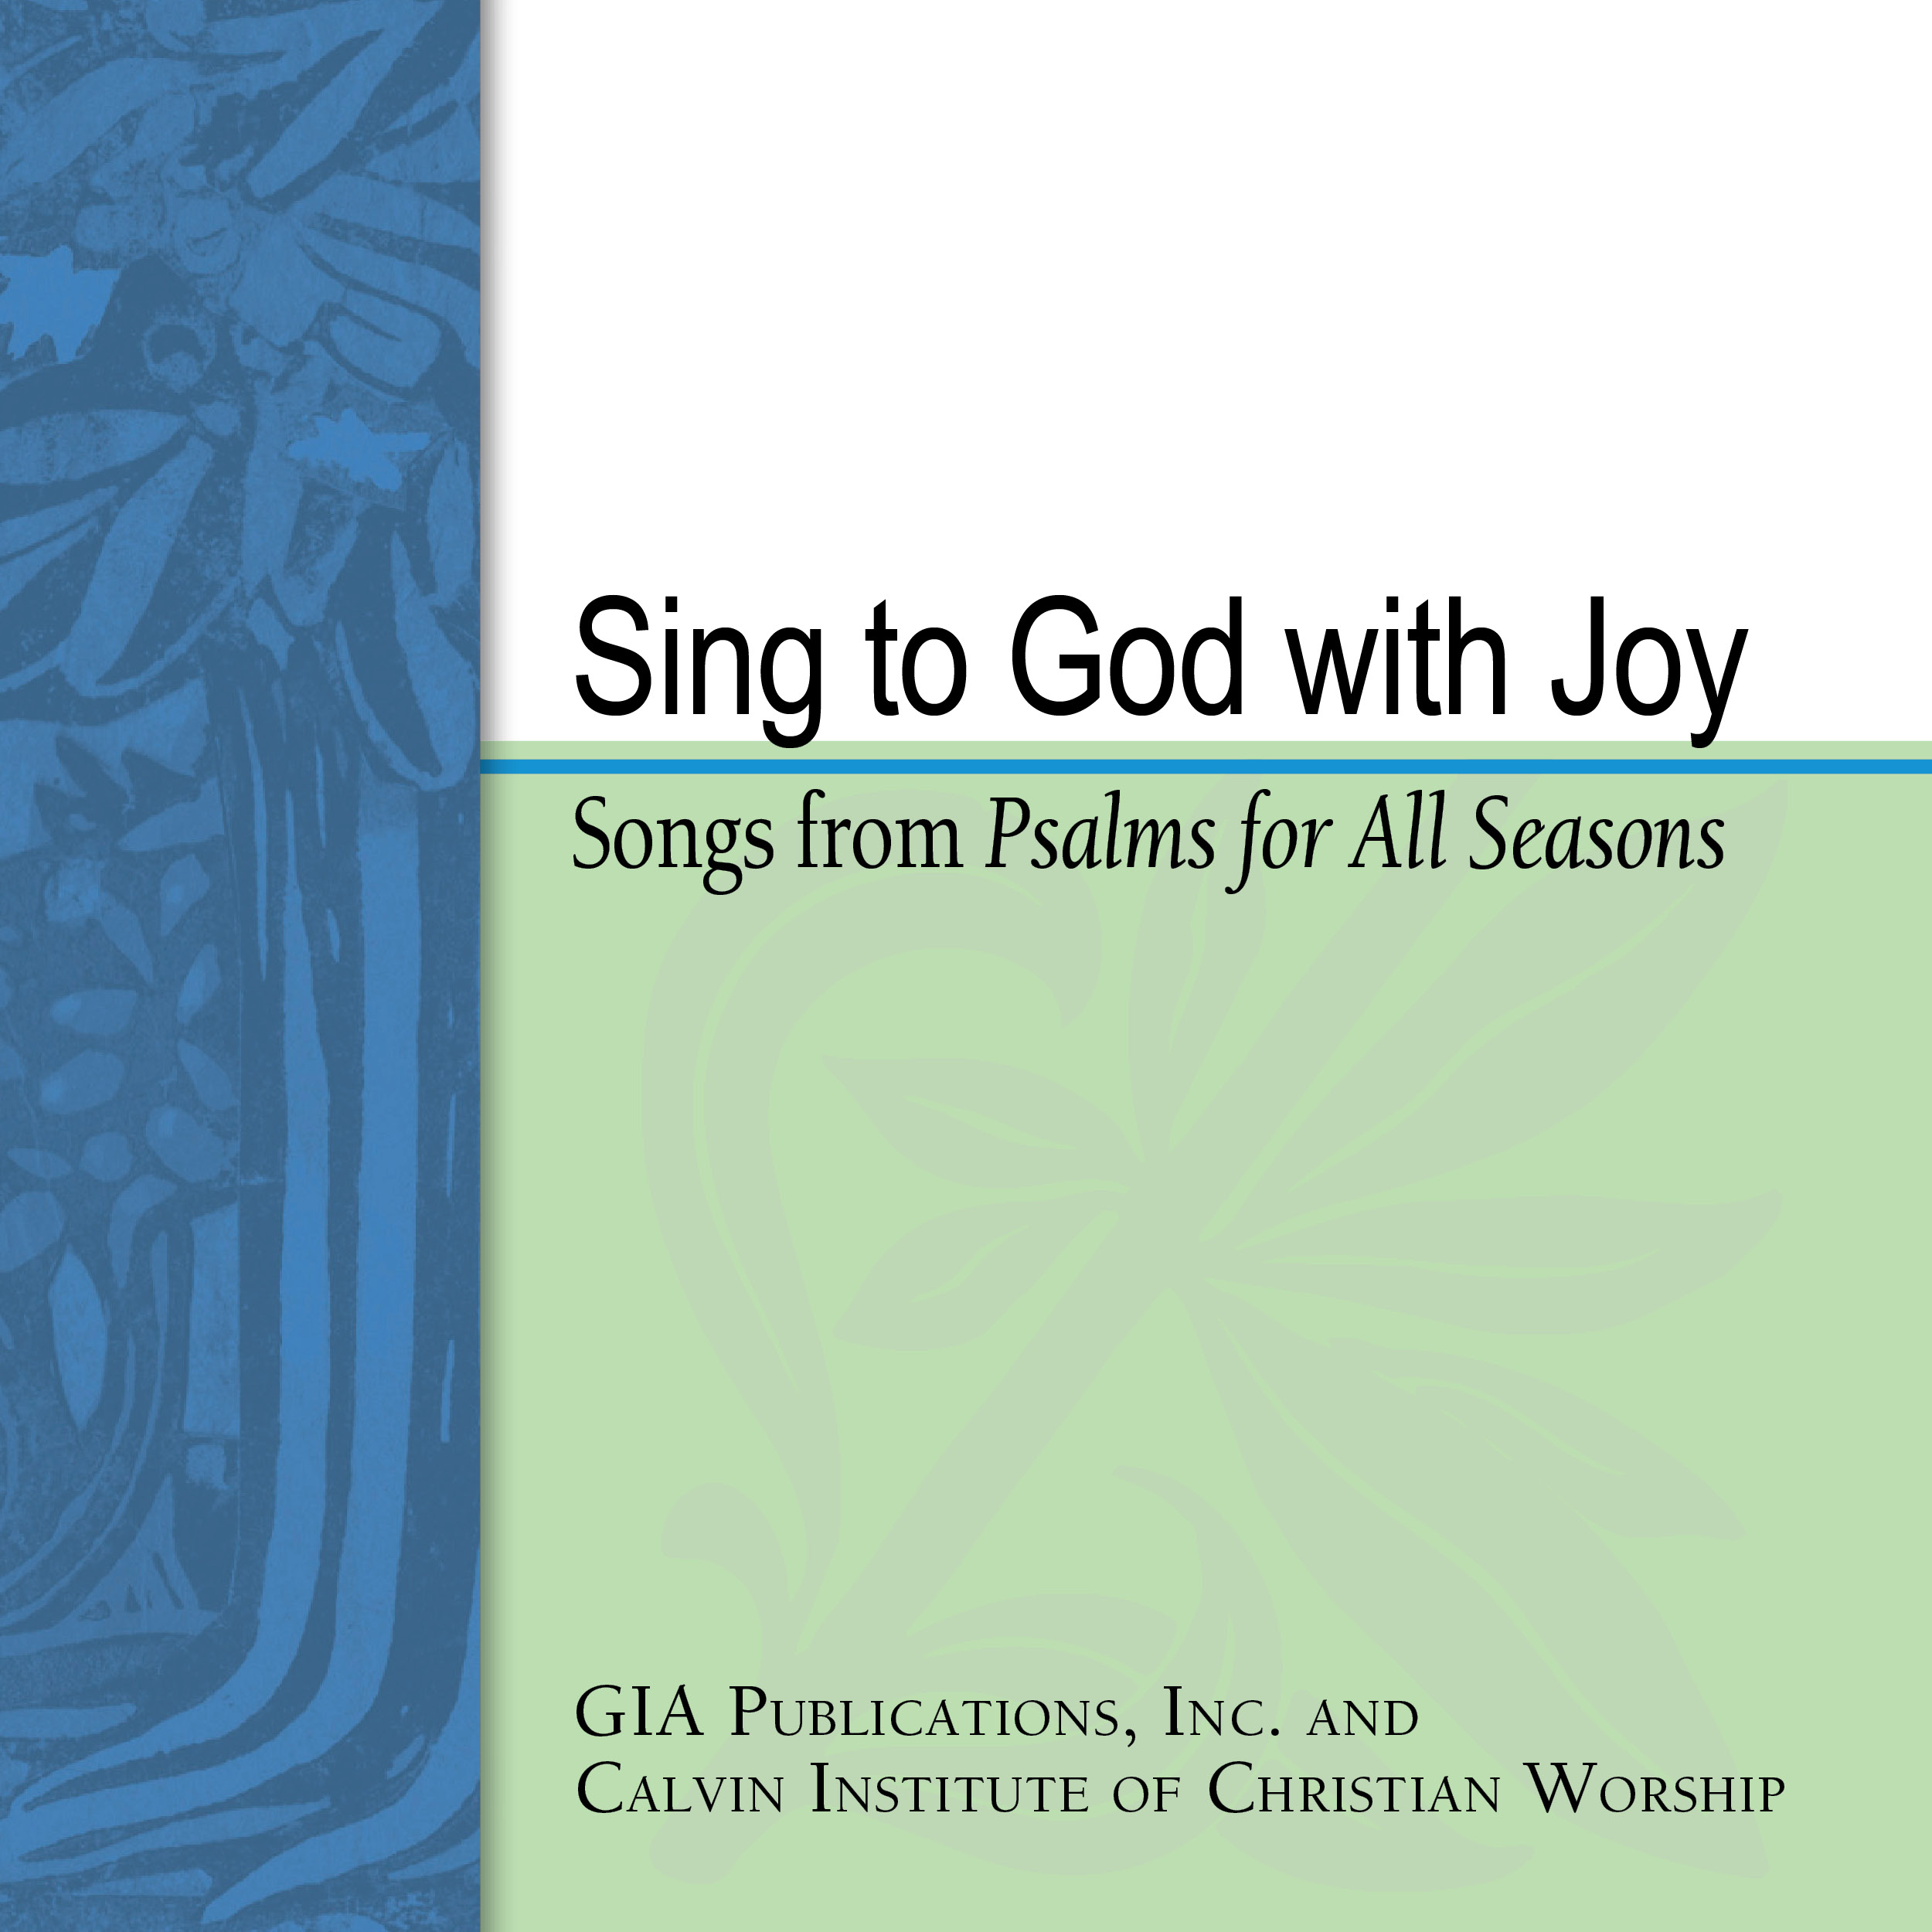 Sing to God with Joy: Songs from Psalms for All Seasons